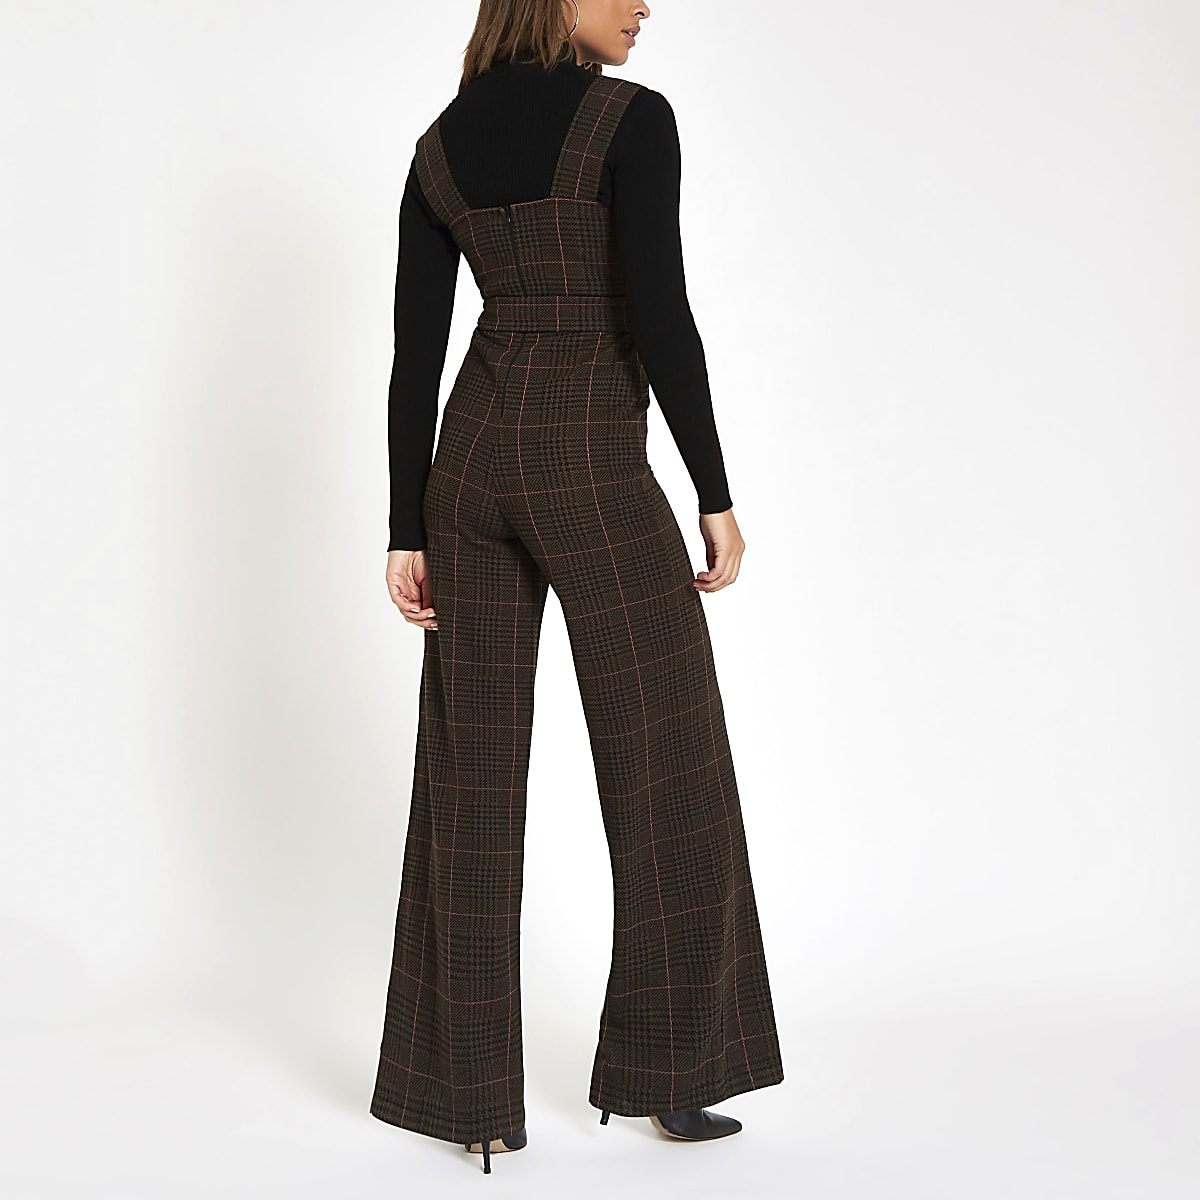 0ecb77d6765 Brown check belted wide leg jumpsuit - Jumpsuits - Playsuits ...